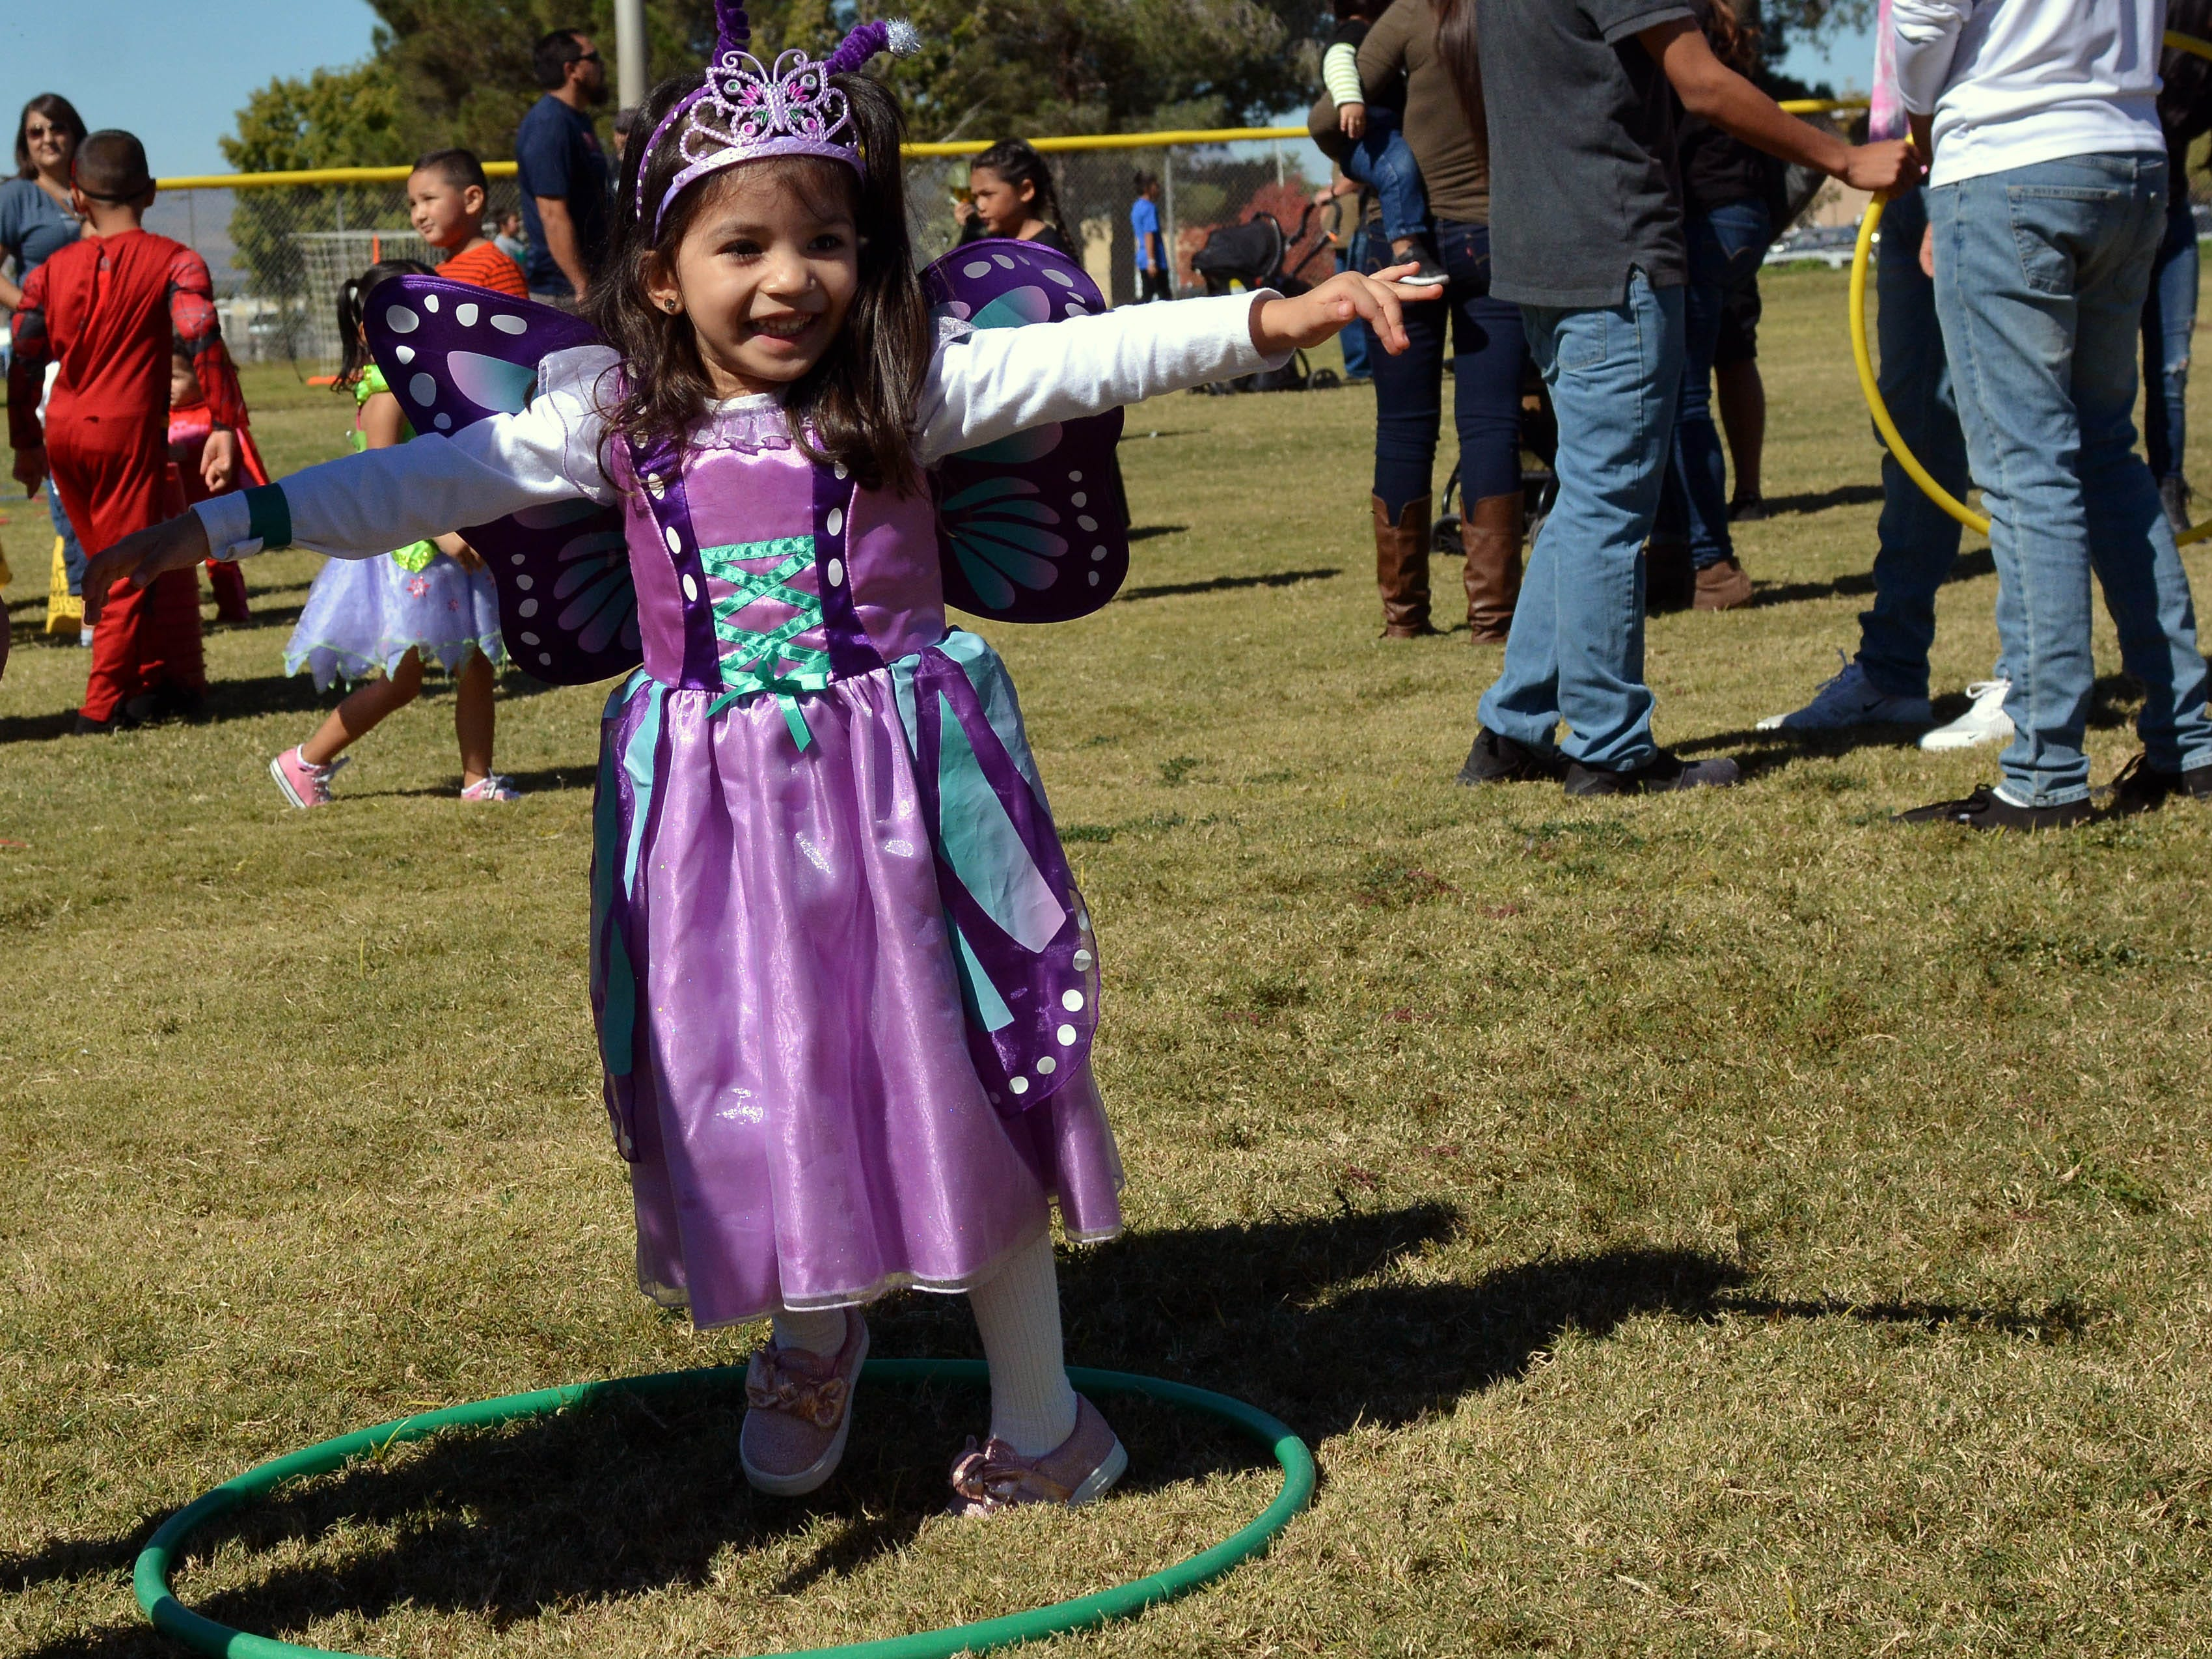 Zia Davila, 3, has fun trying her skills with the hula hoop during the 14th annual Great Pumpkin Candy Drop, held Sunday, Oct, 28 at Maag Park.